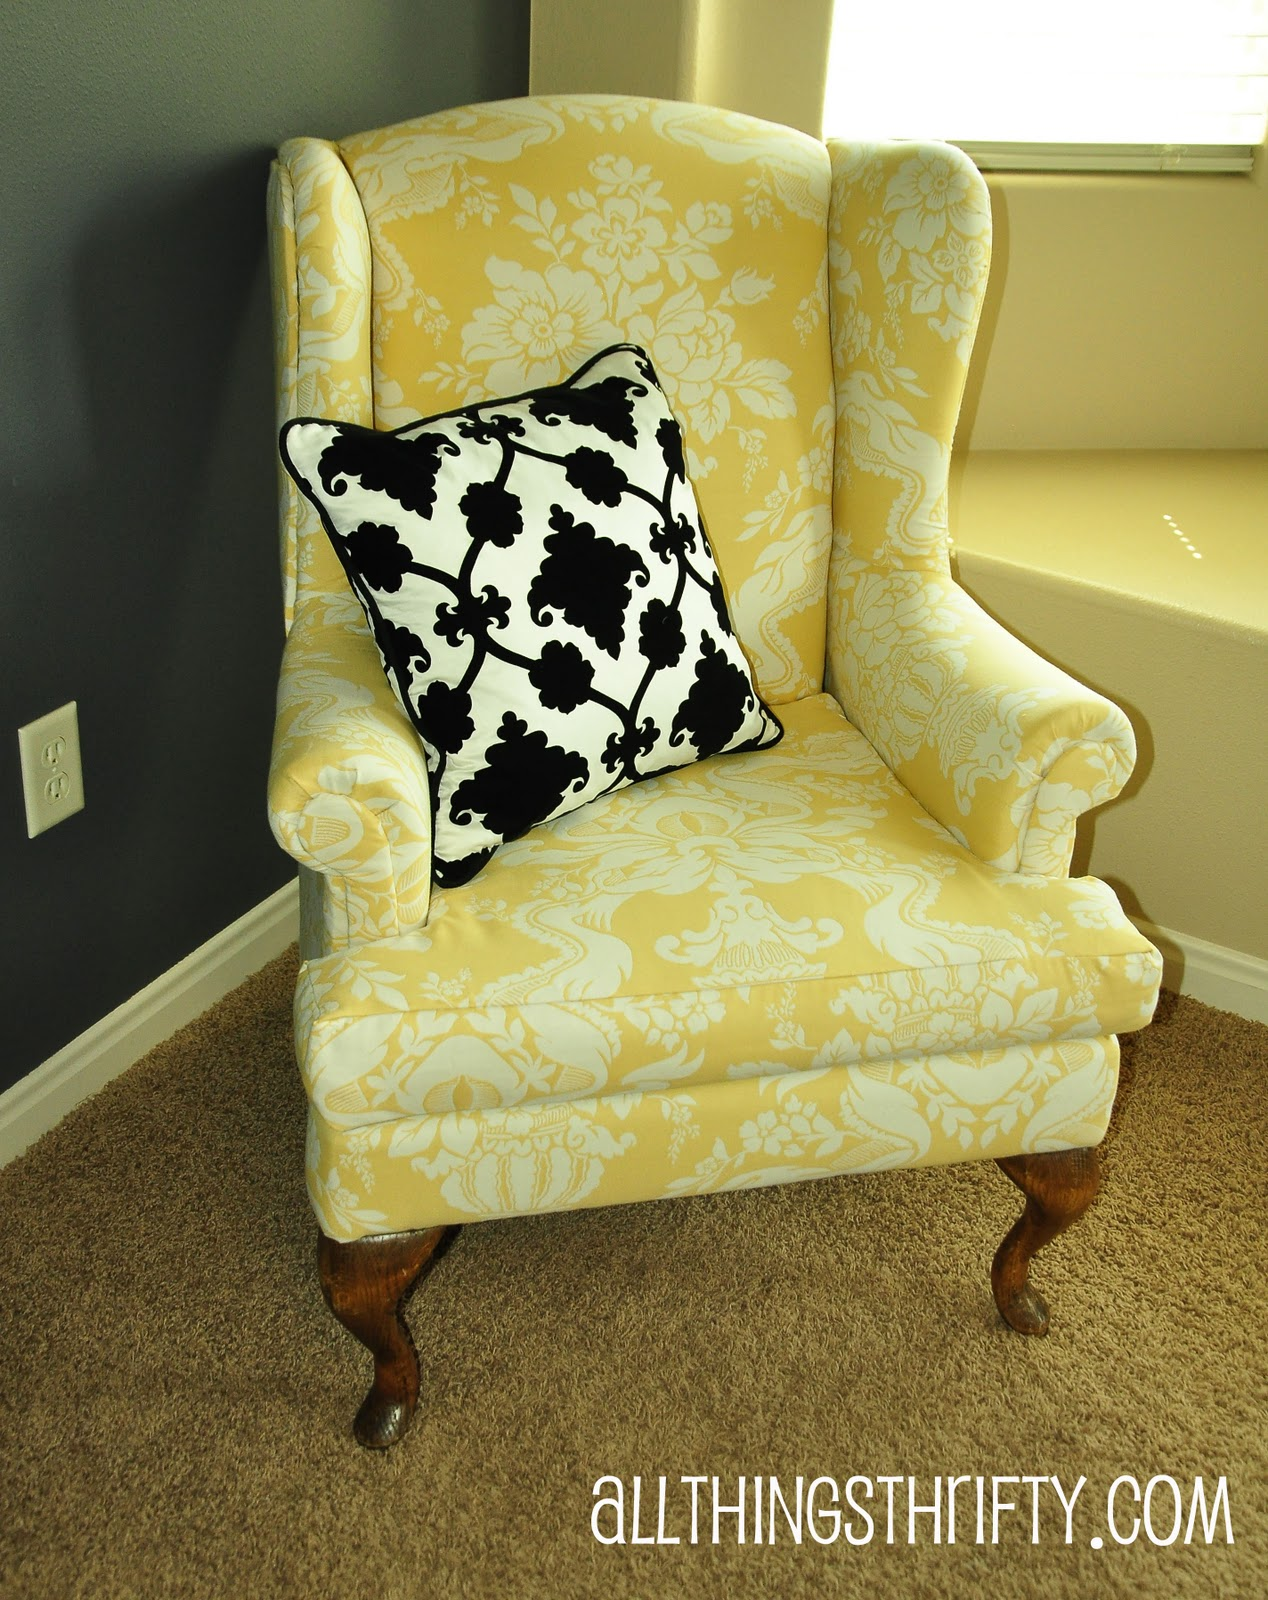 Cost Of Reupholstering A Chair Upholstering A Wing Back Chair Upholstery Tips All Things Thrifty